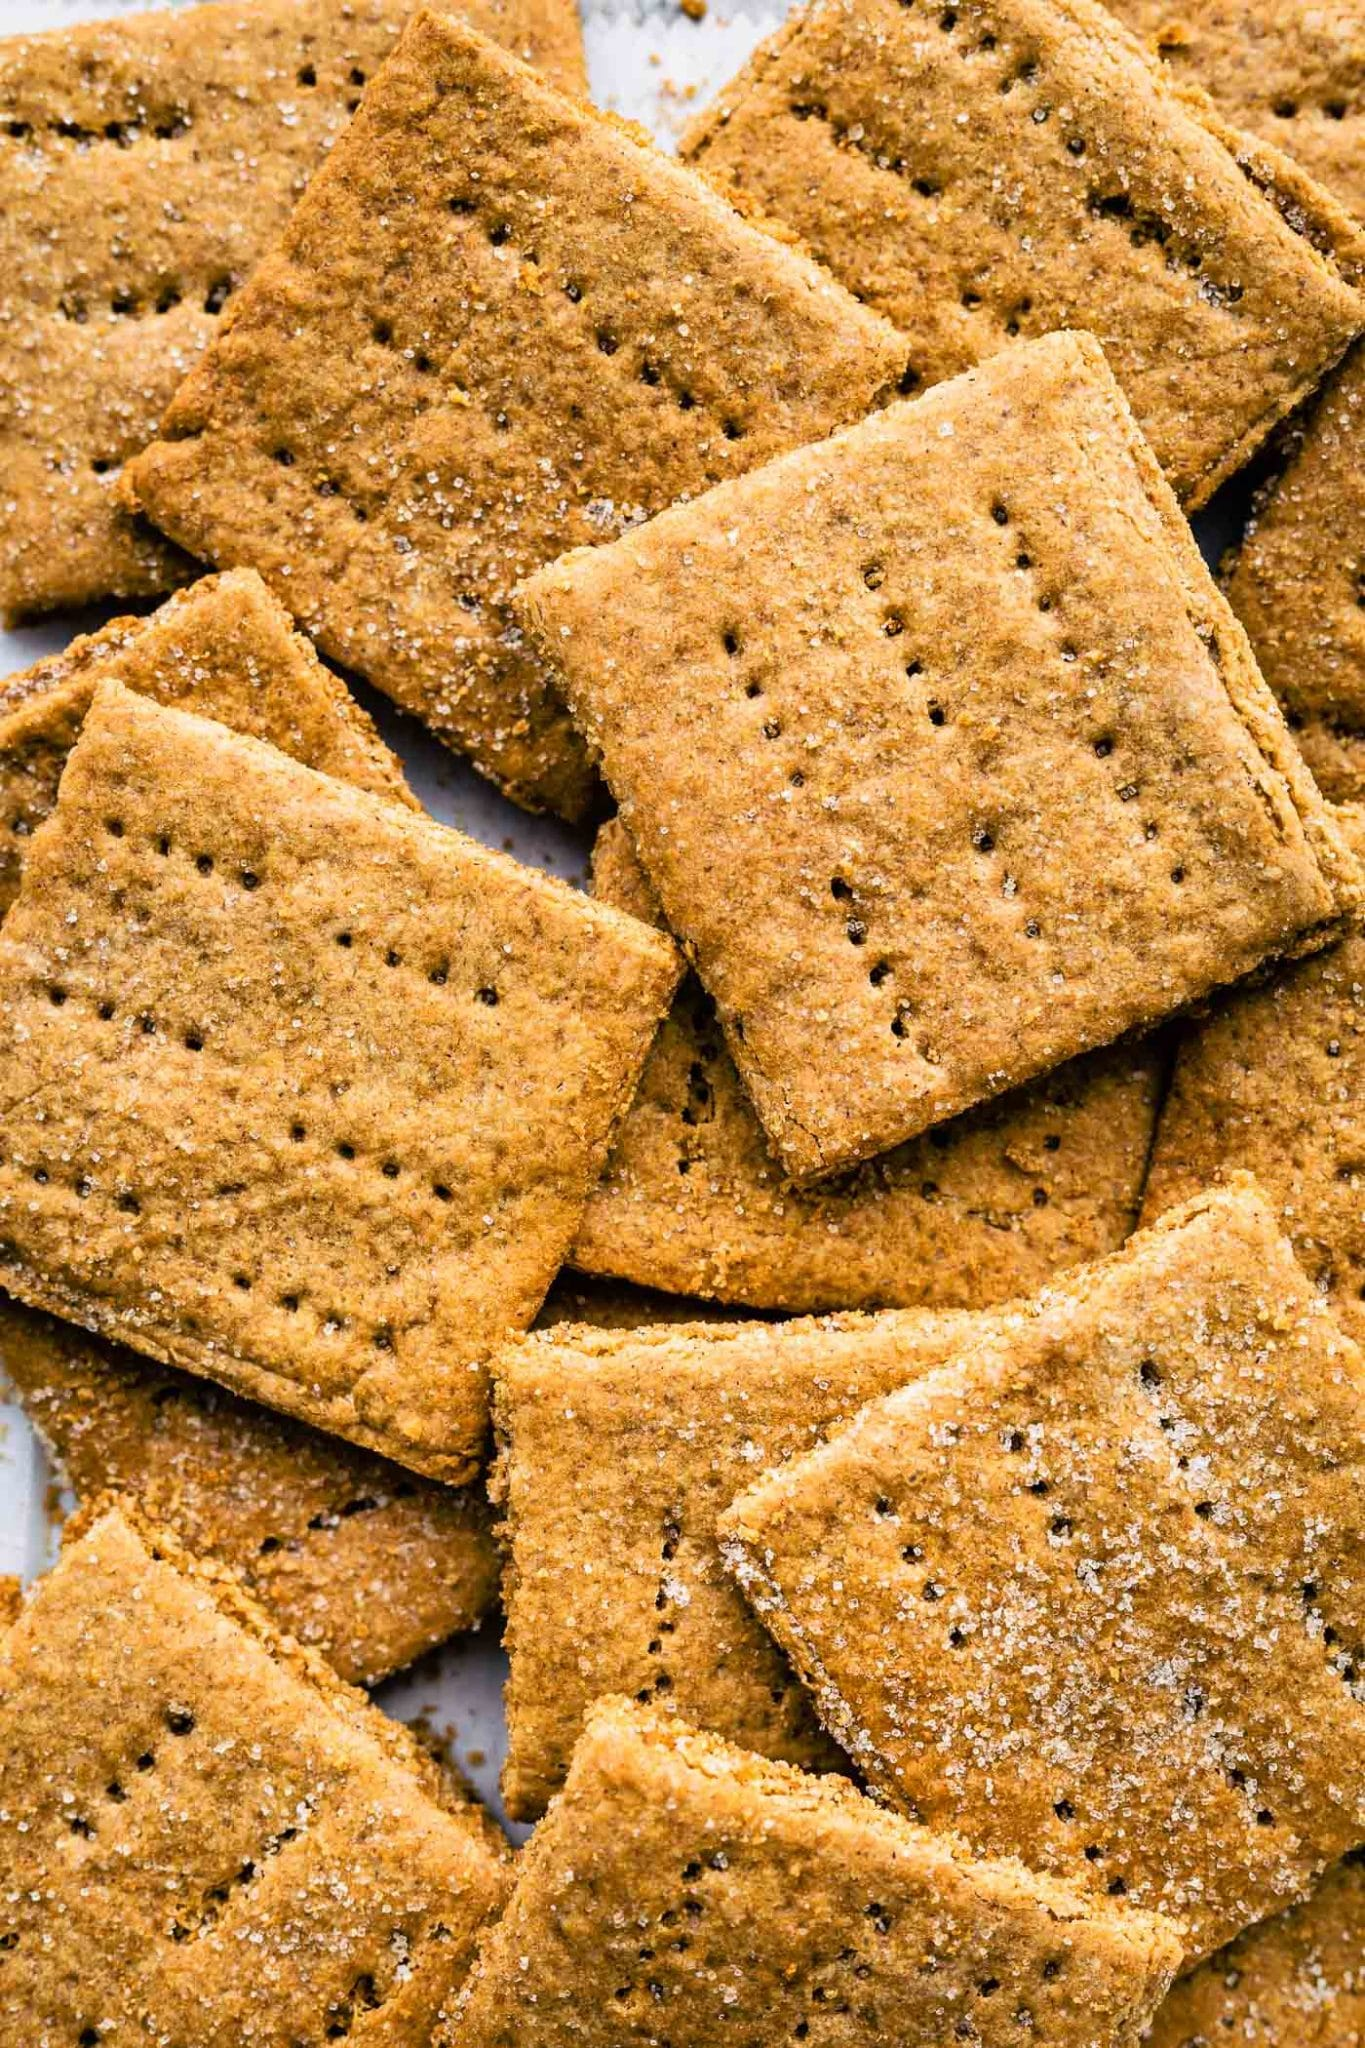 Overhead close up image of a pile of graham crackers.